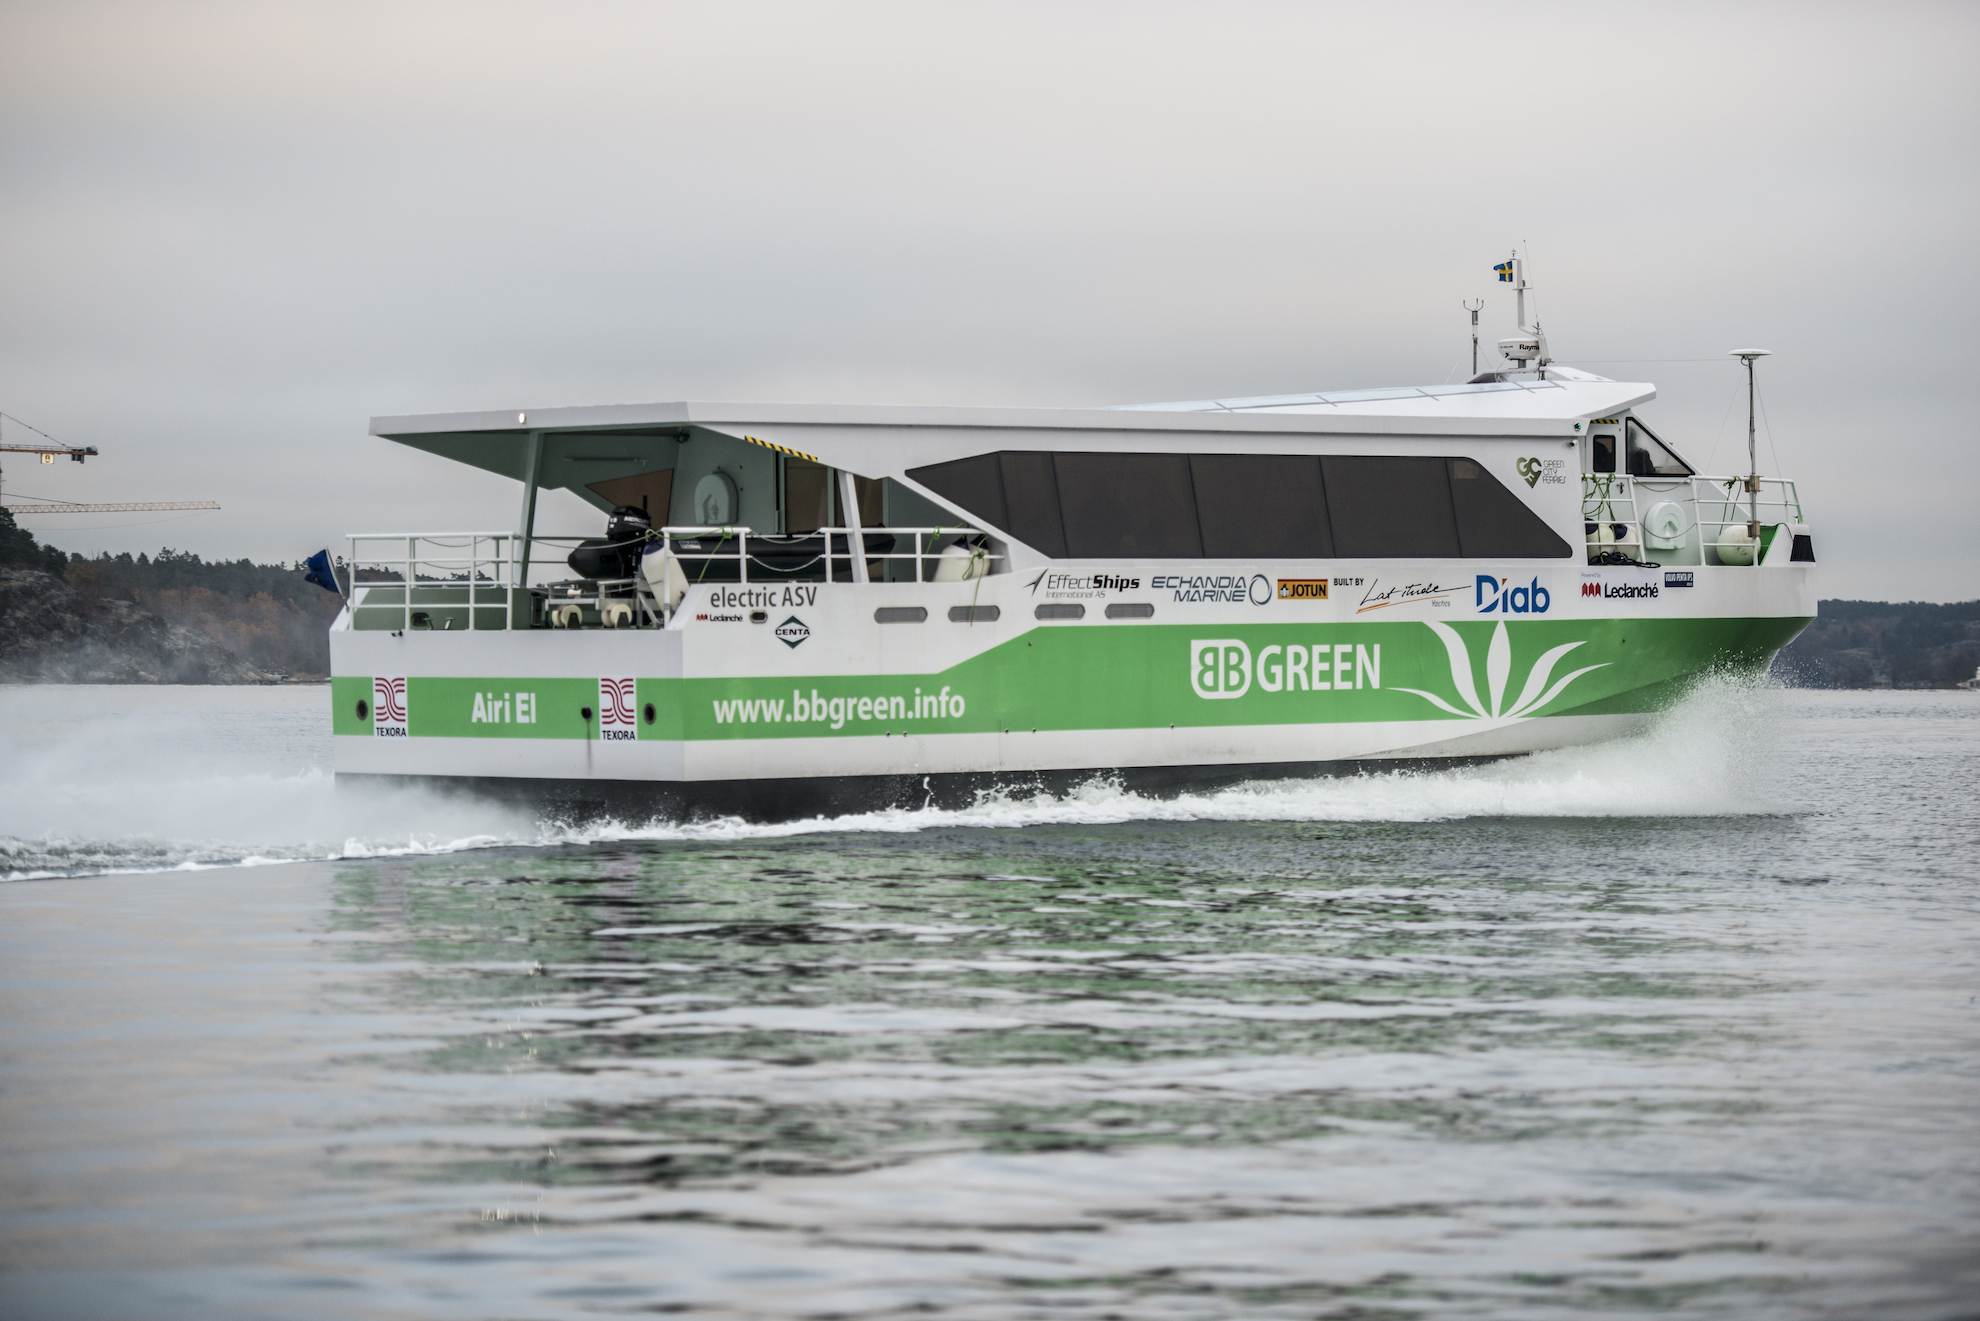 More efficient design makes new generation electric ferries